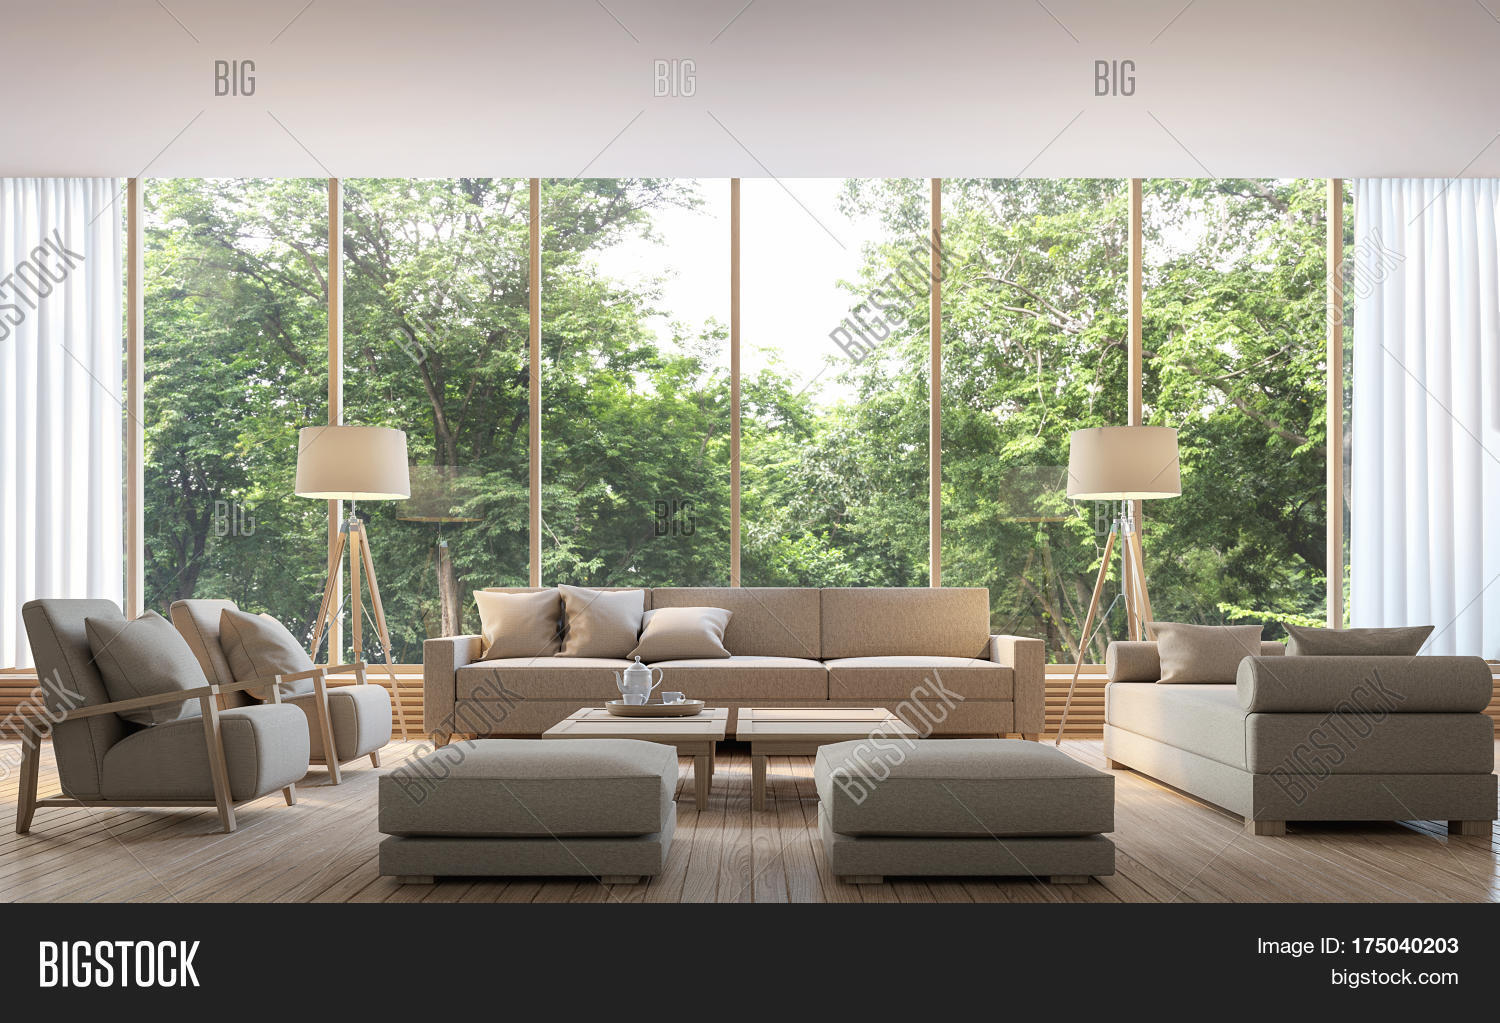 Modern living room nature view 3d image photo bigstock for Living room 3d view